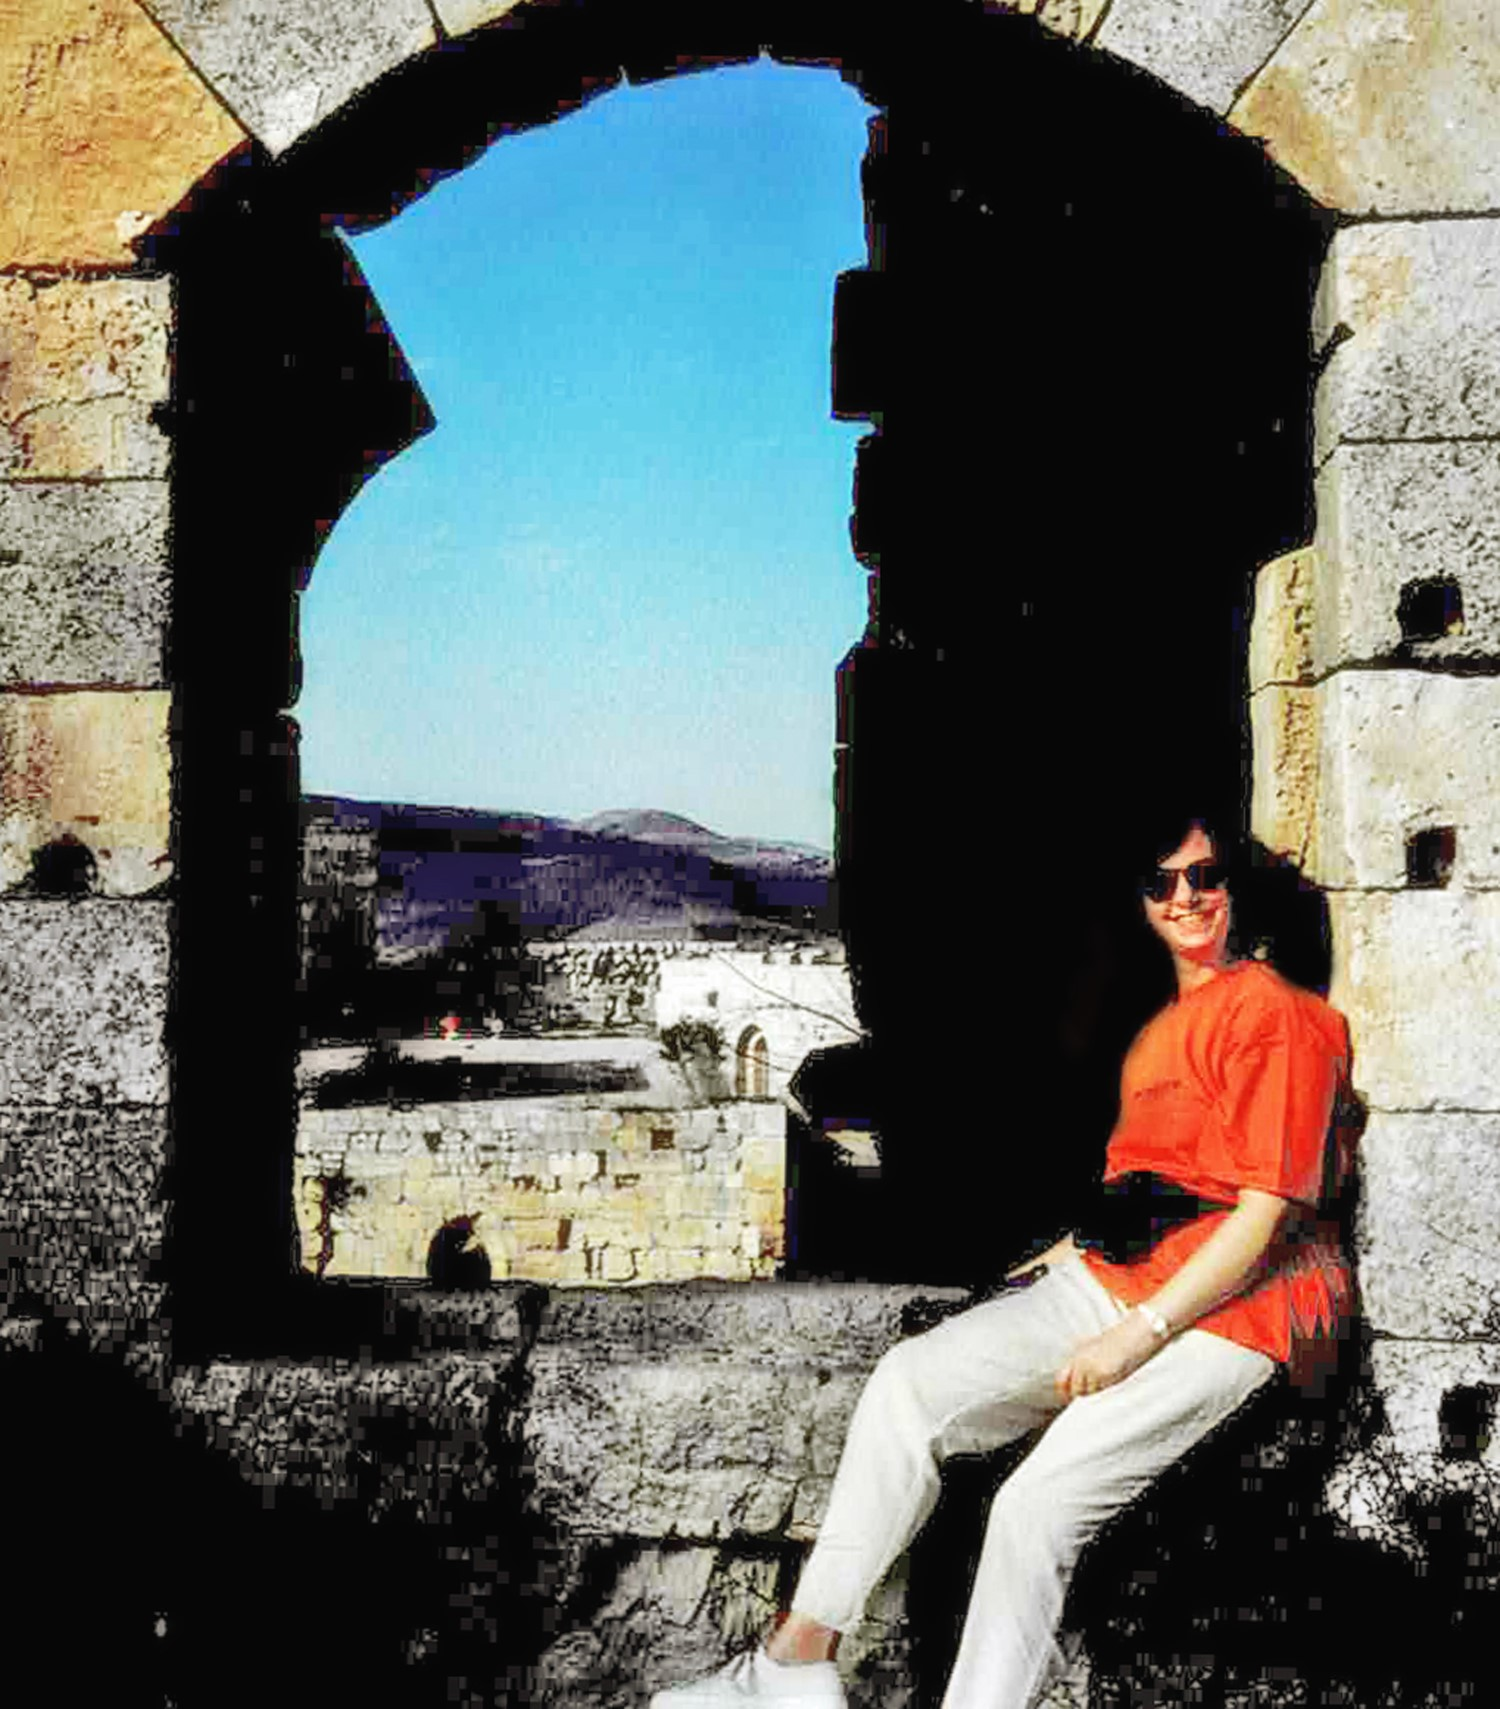 Ruined castle window with woman seated